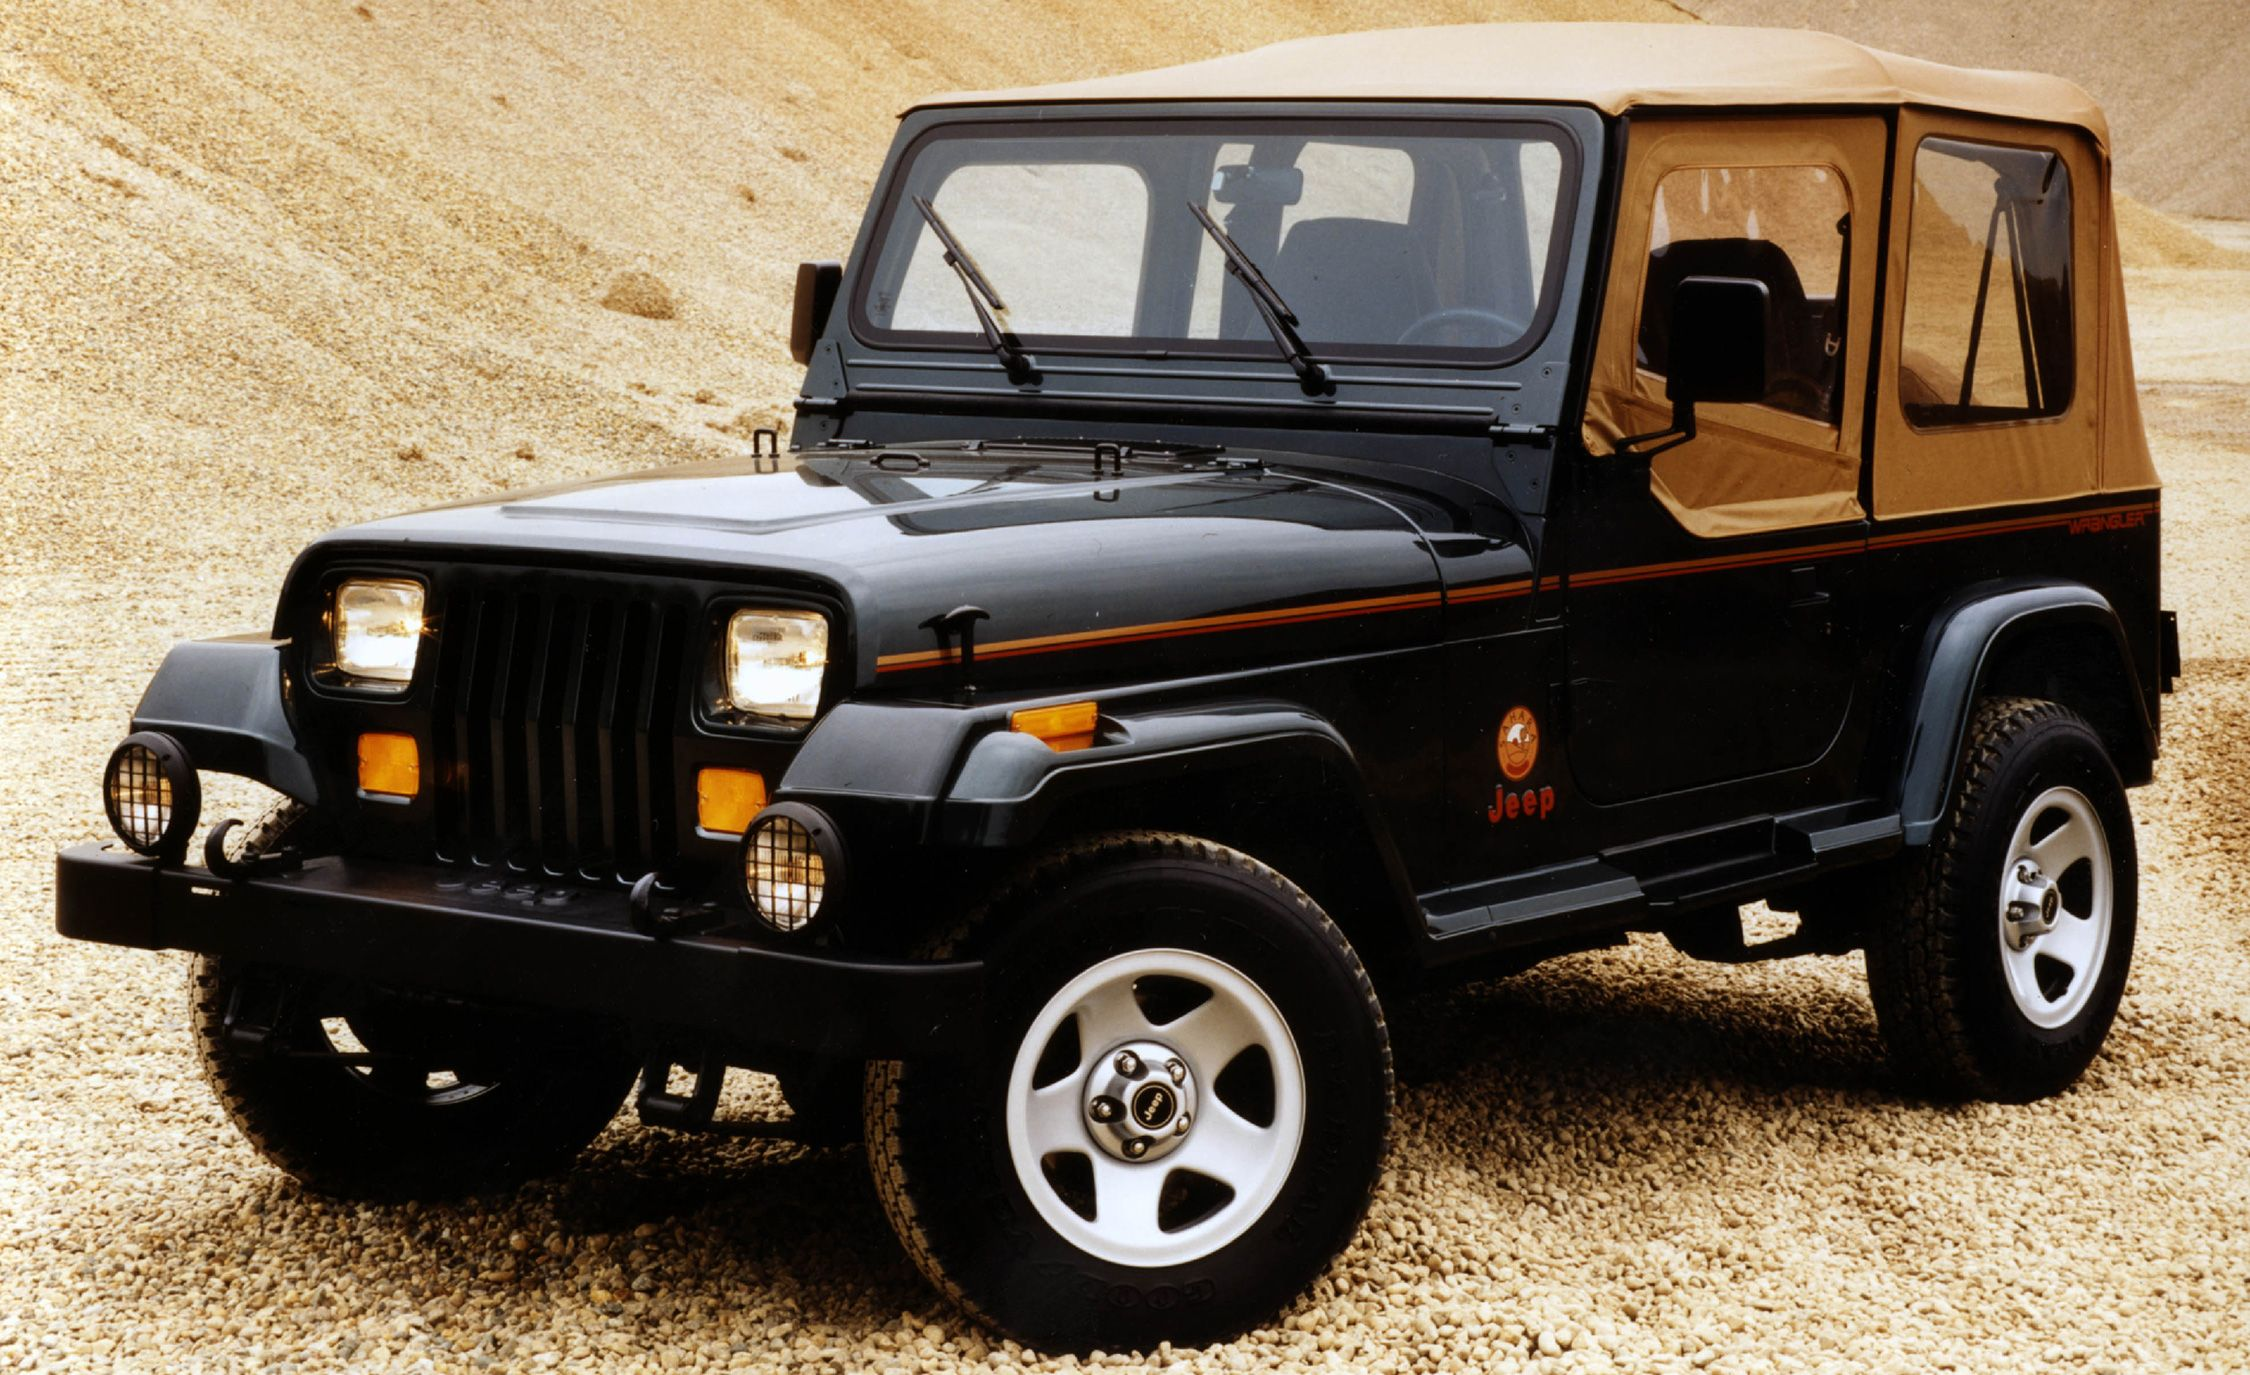 Jeep Wrangler Wiki >> The Complete Visual History Of The Jeep Wrangler From 1986 To Present